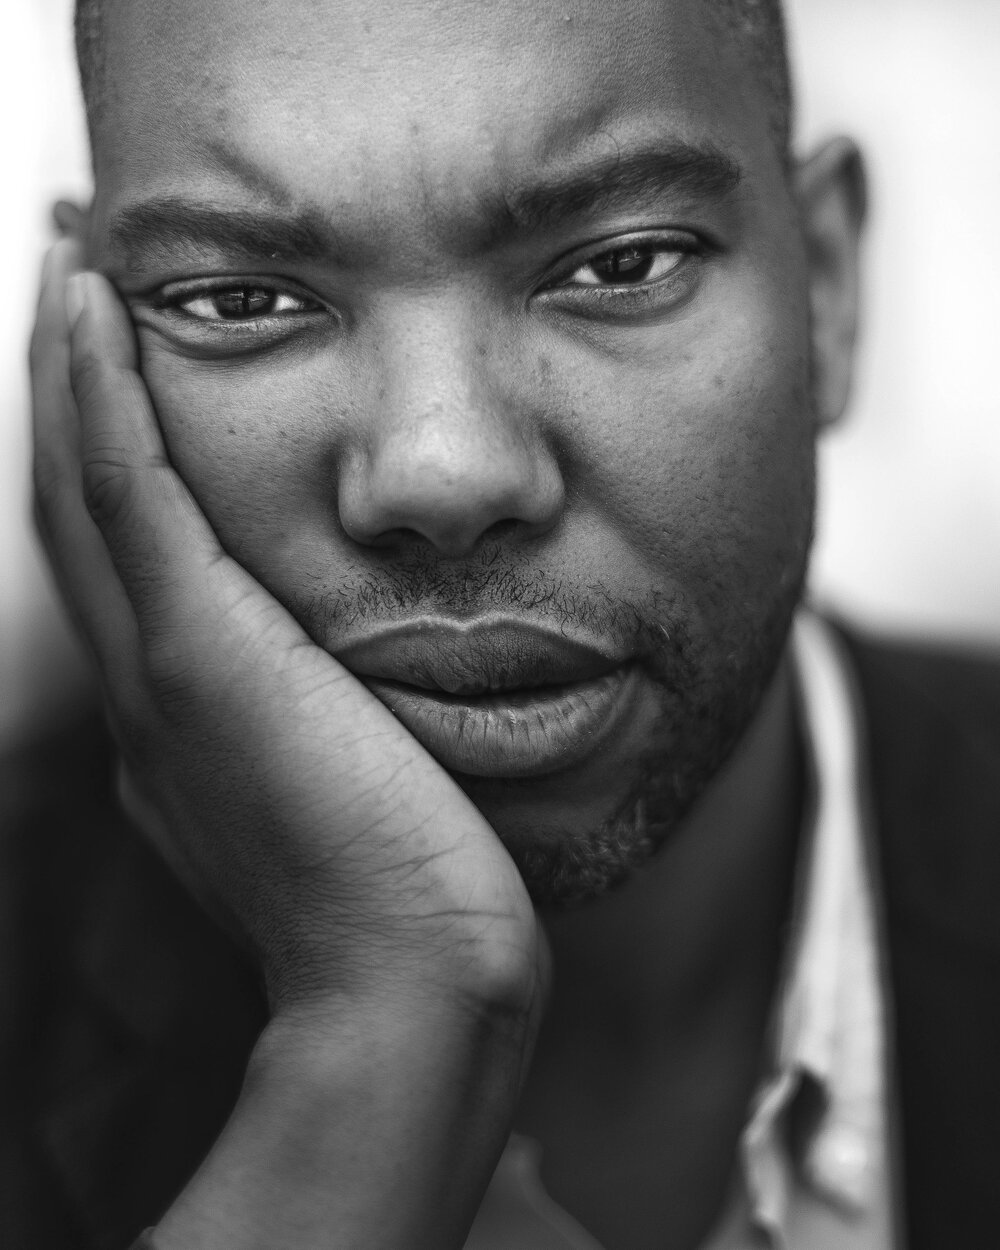 Ta-Nehisi Coates, Writer, Baltimore, Md.